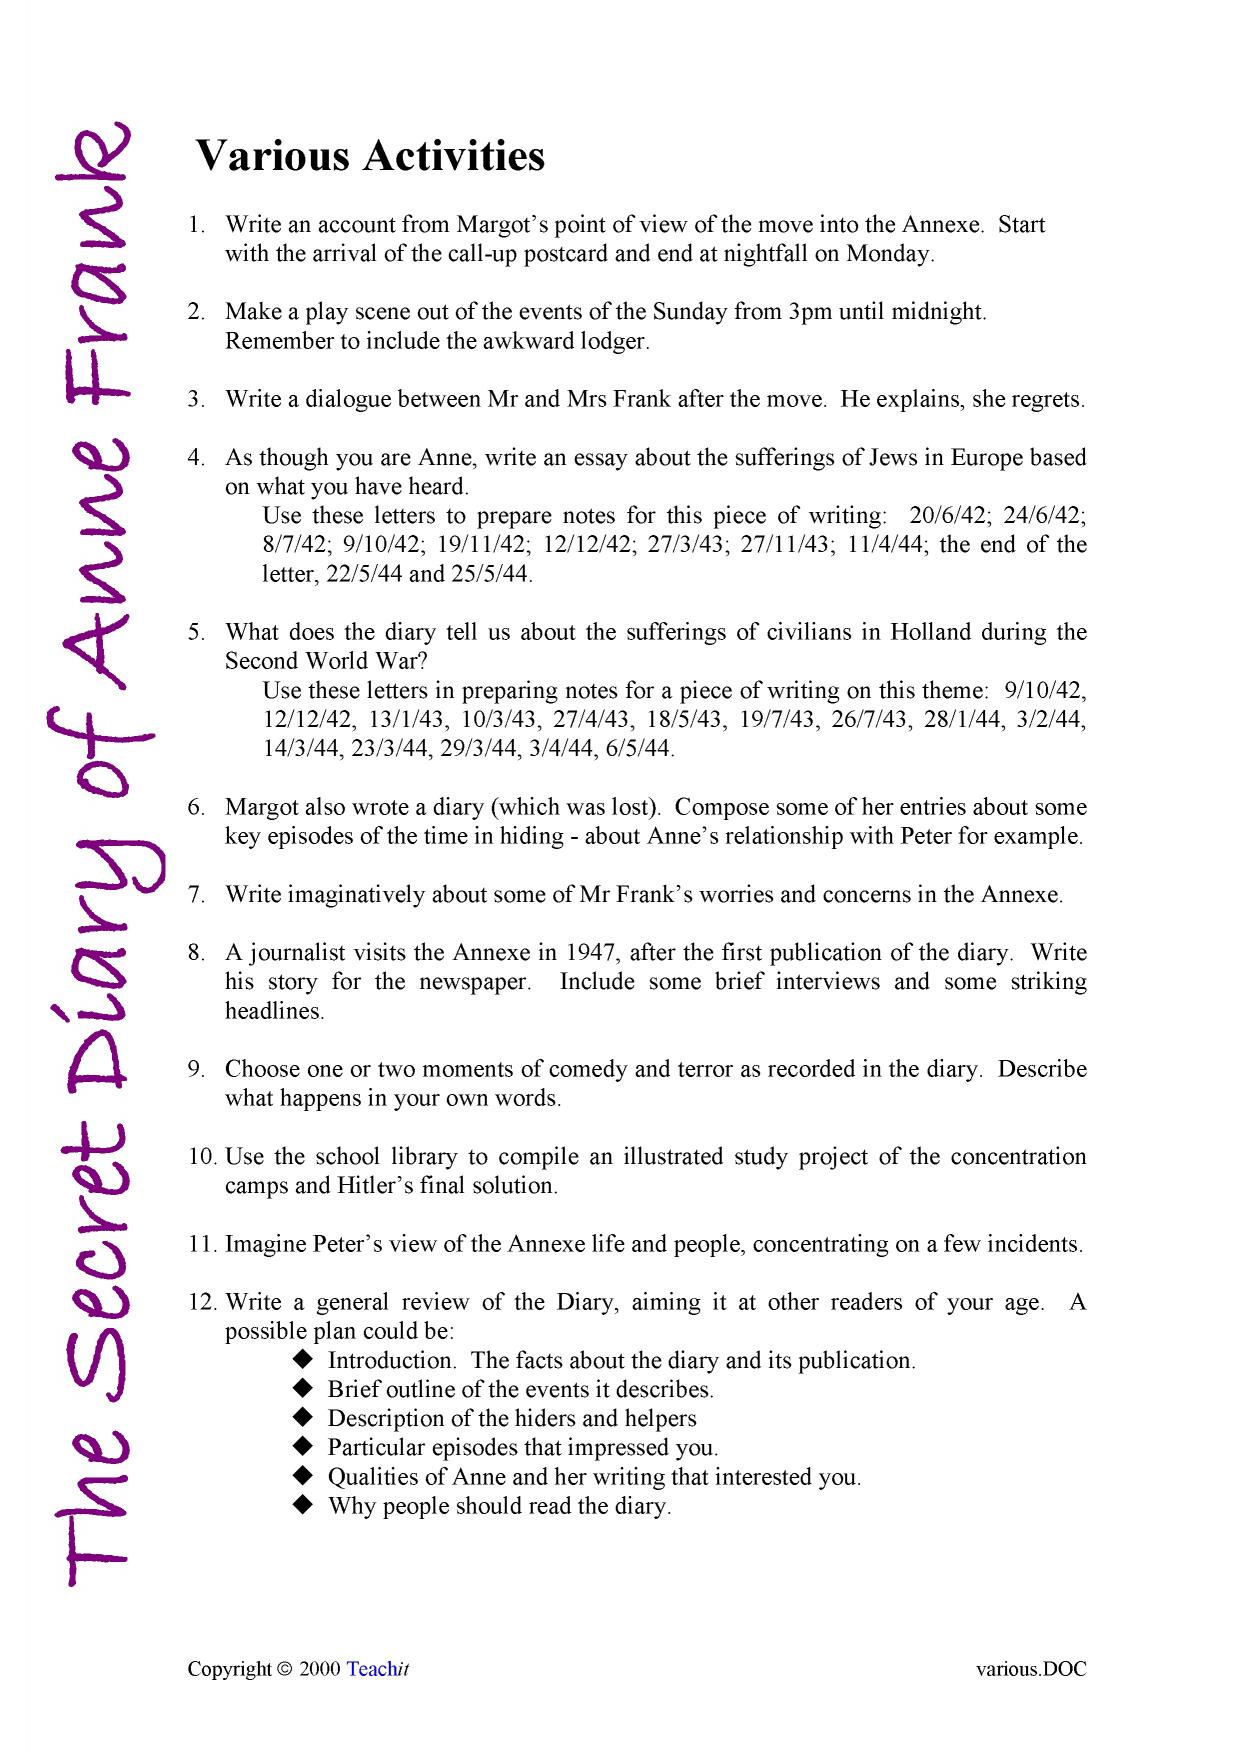 essay essay dialogue between people essay bib annotated  essay dialogue between people essay dialogue between 2 people